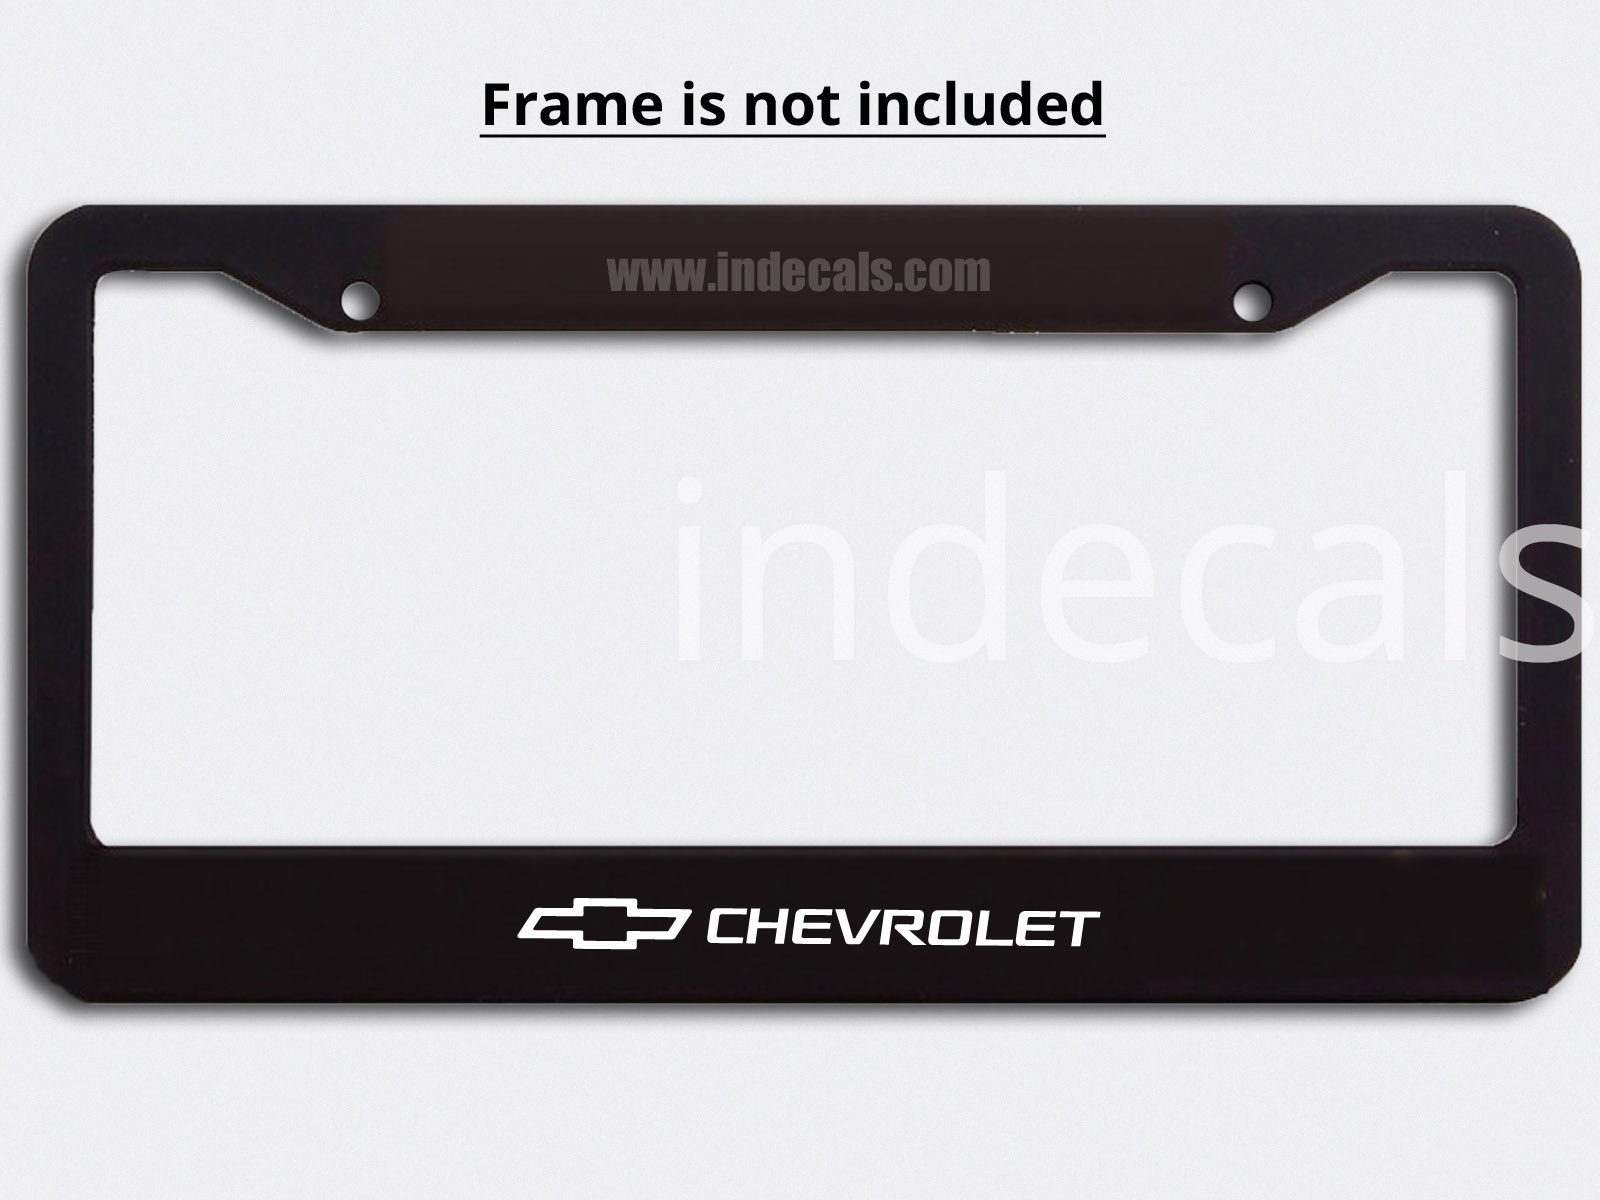 3 x Chevrolet Stickers for Plate Frame - White